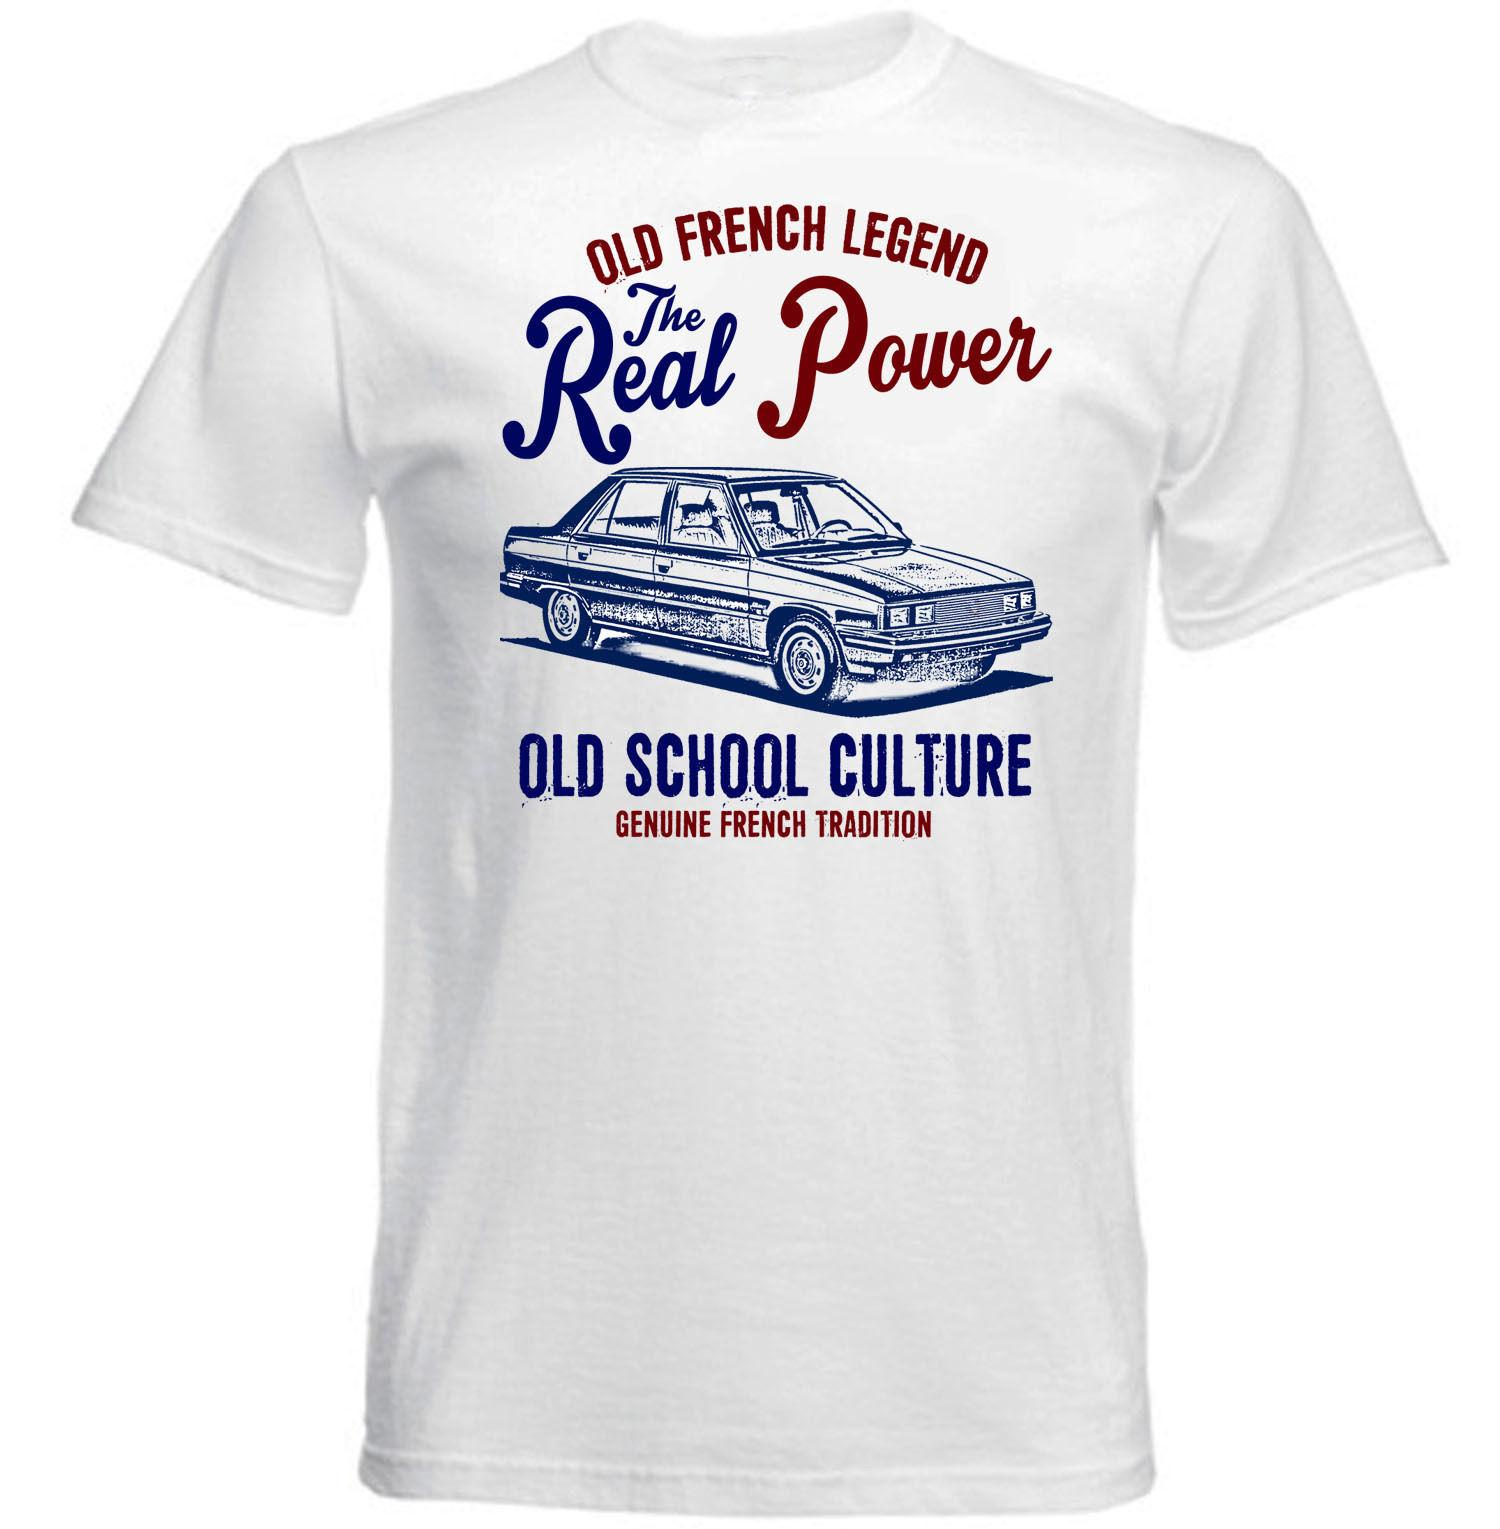 63a5fab881 Vintage French Car Renault 9 New Cotton T Shirt Discount Hot New T Shirt  Top T Shirt Funny 100% Cotton T Shirt Buy T Shirts Online T Shirt From  Ourslove, ...